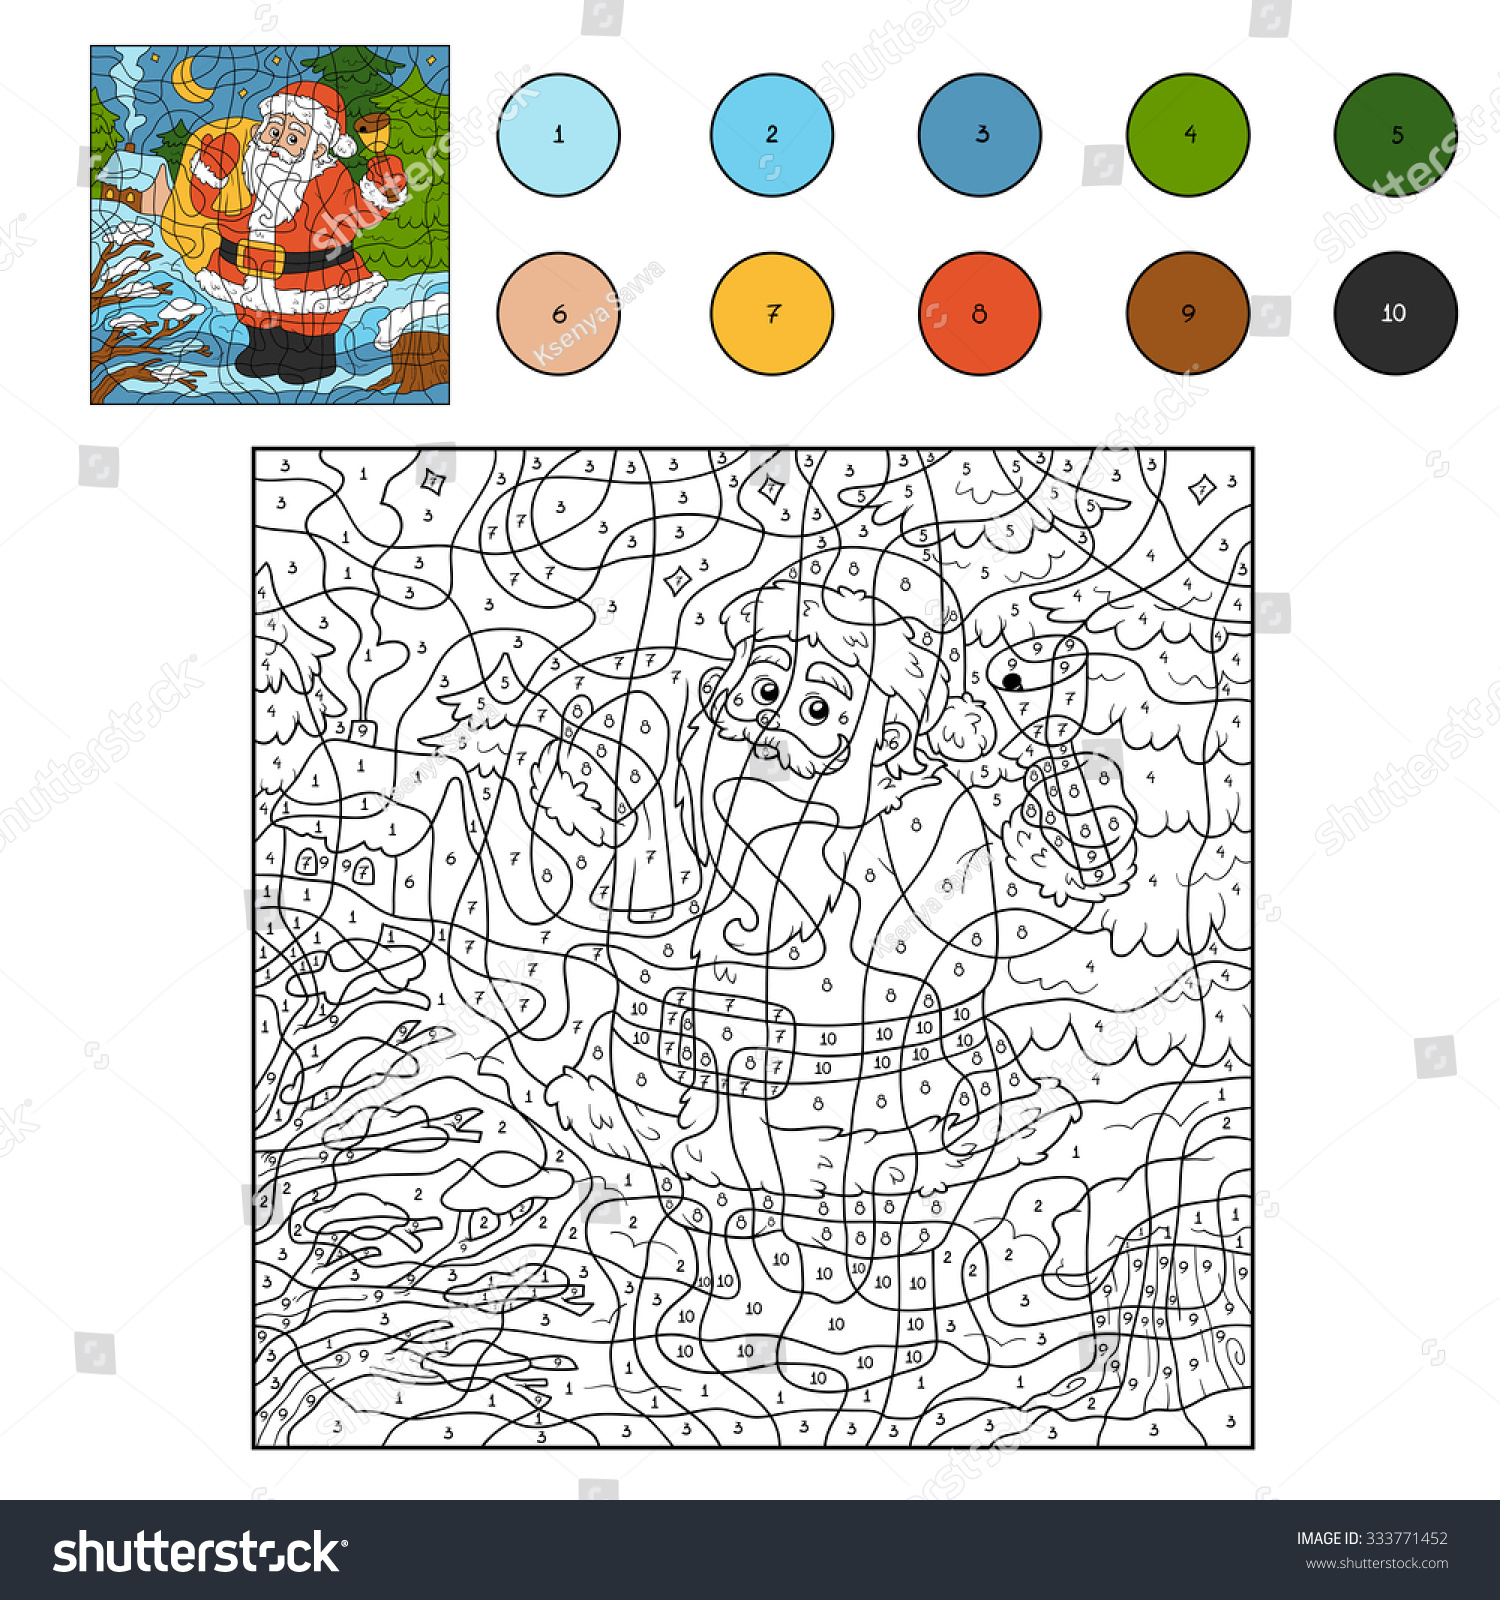 Color By Number Game Children Santa Stock Vector